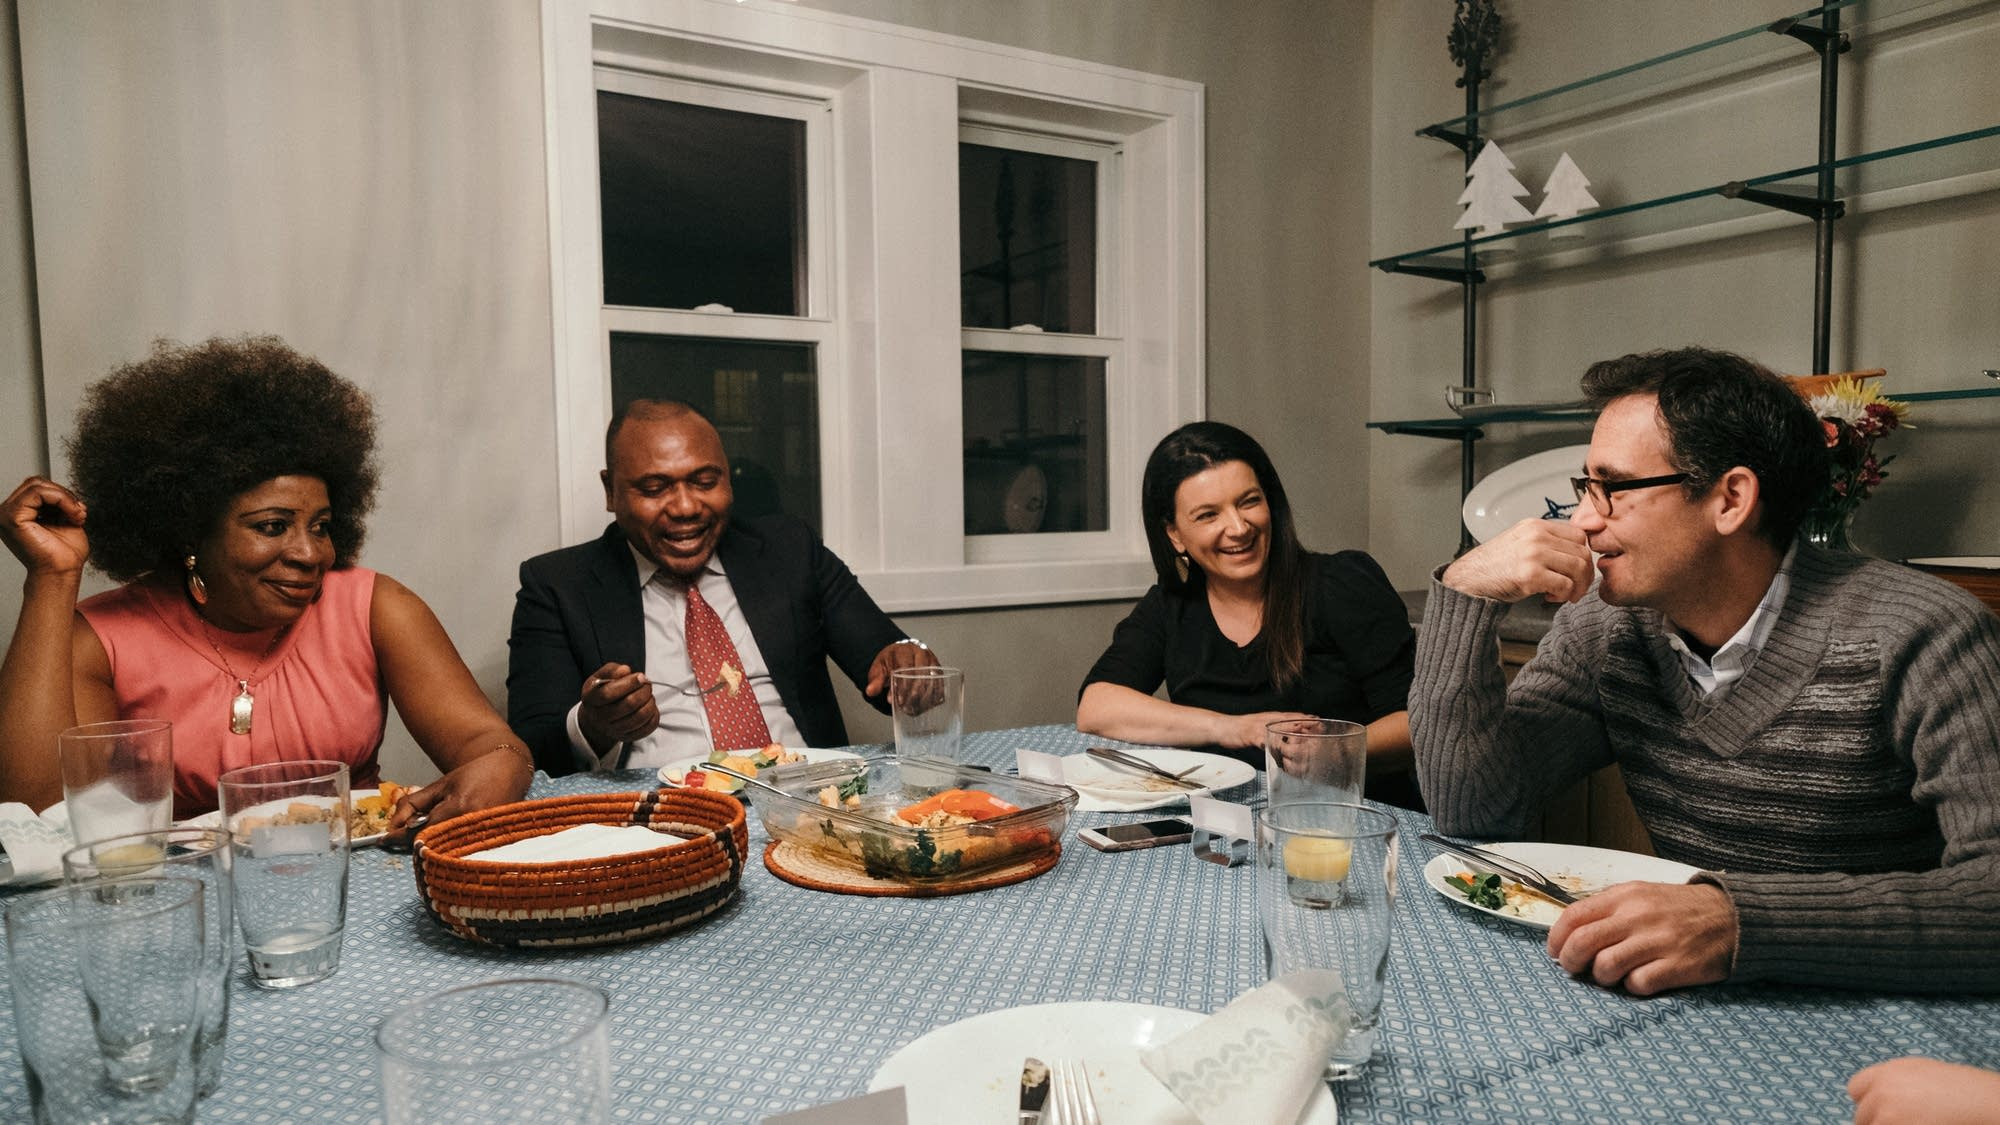 The two couples share a laugh and a meal.